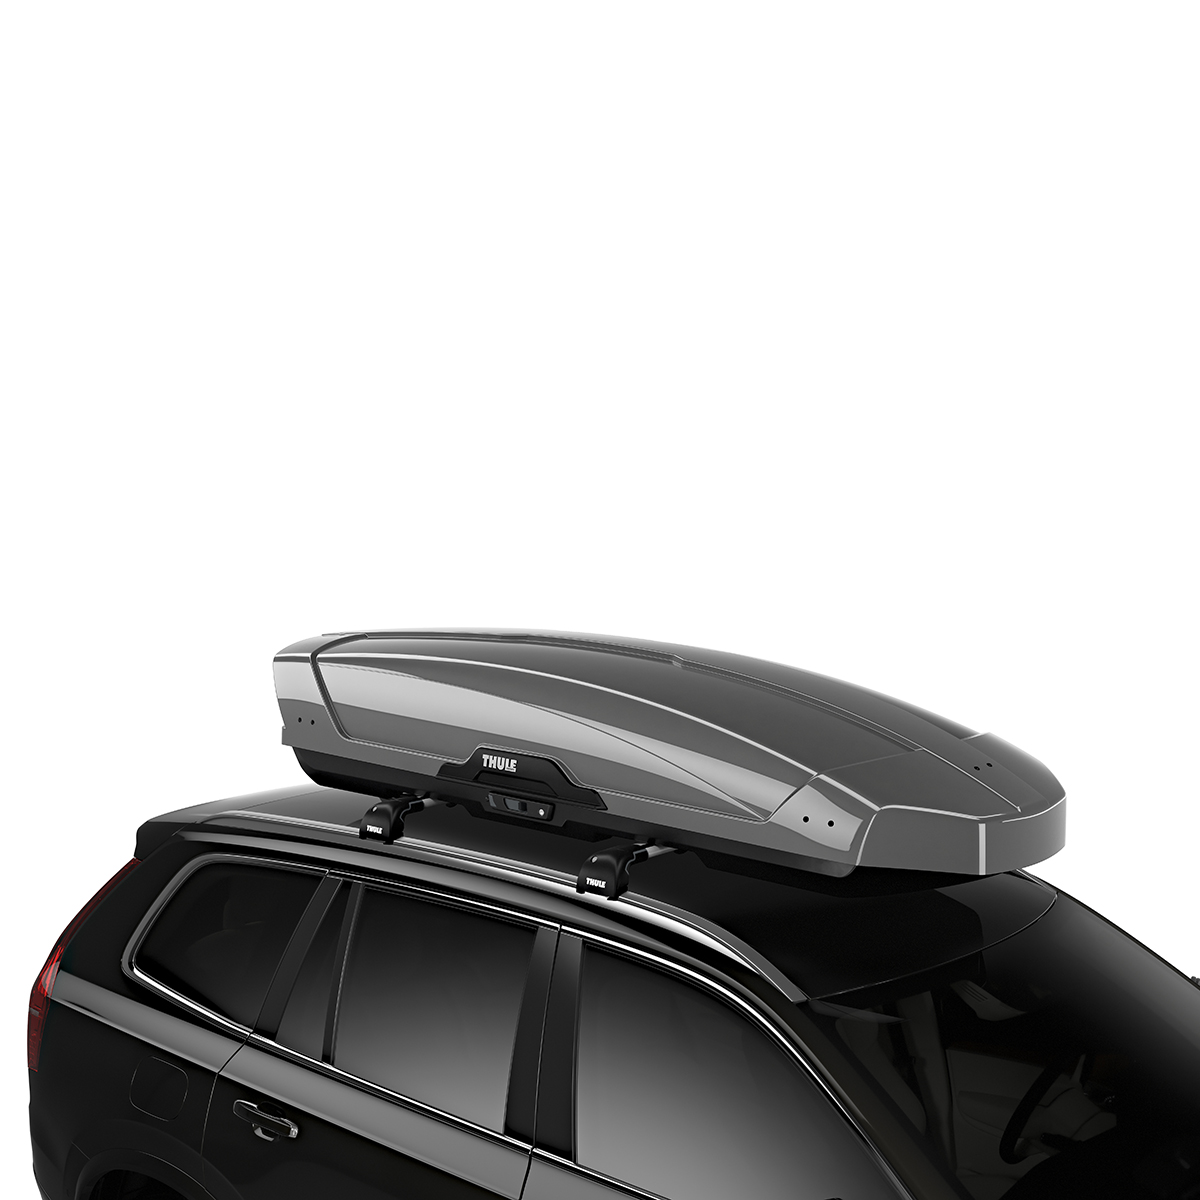 thule motion xt xxl 900 roof box. Black Bedroom Furniture Sets. Home Design Ideas